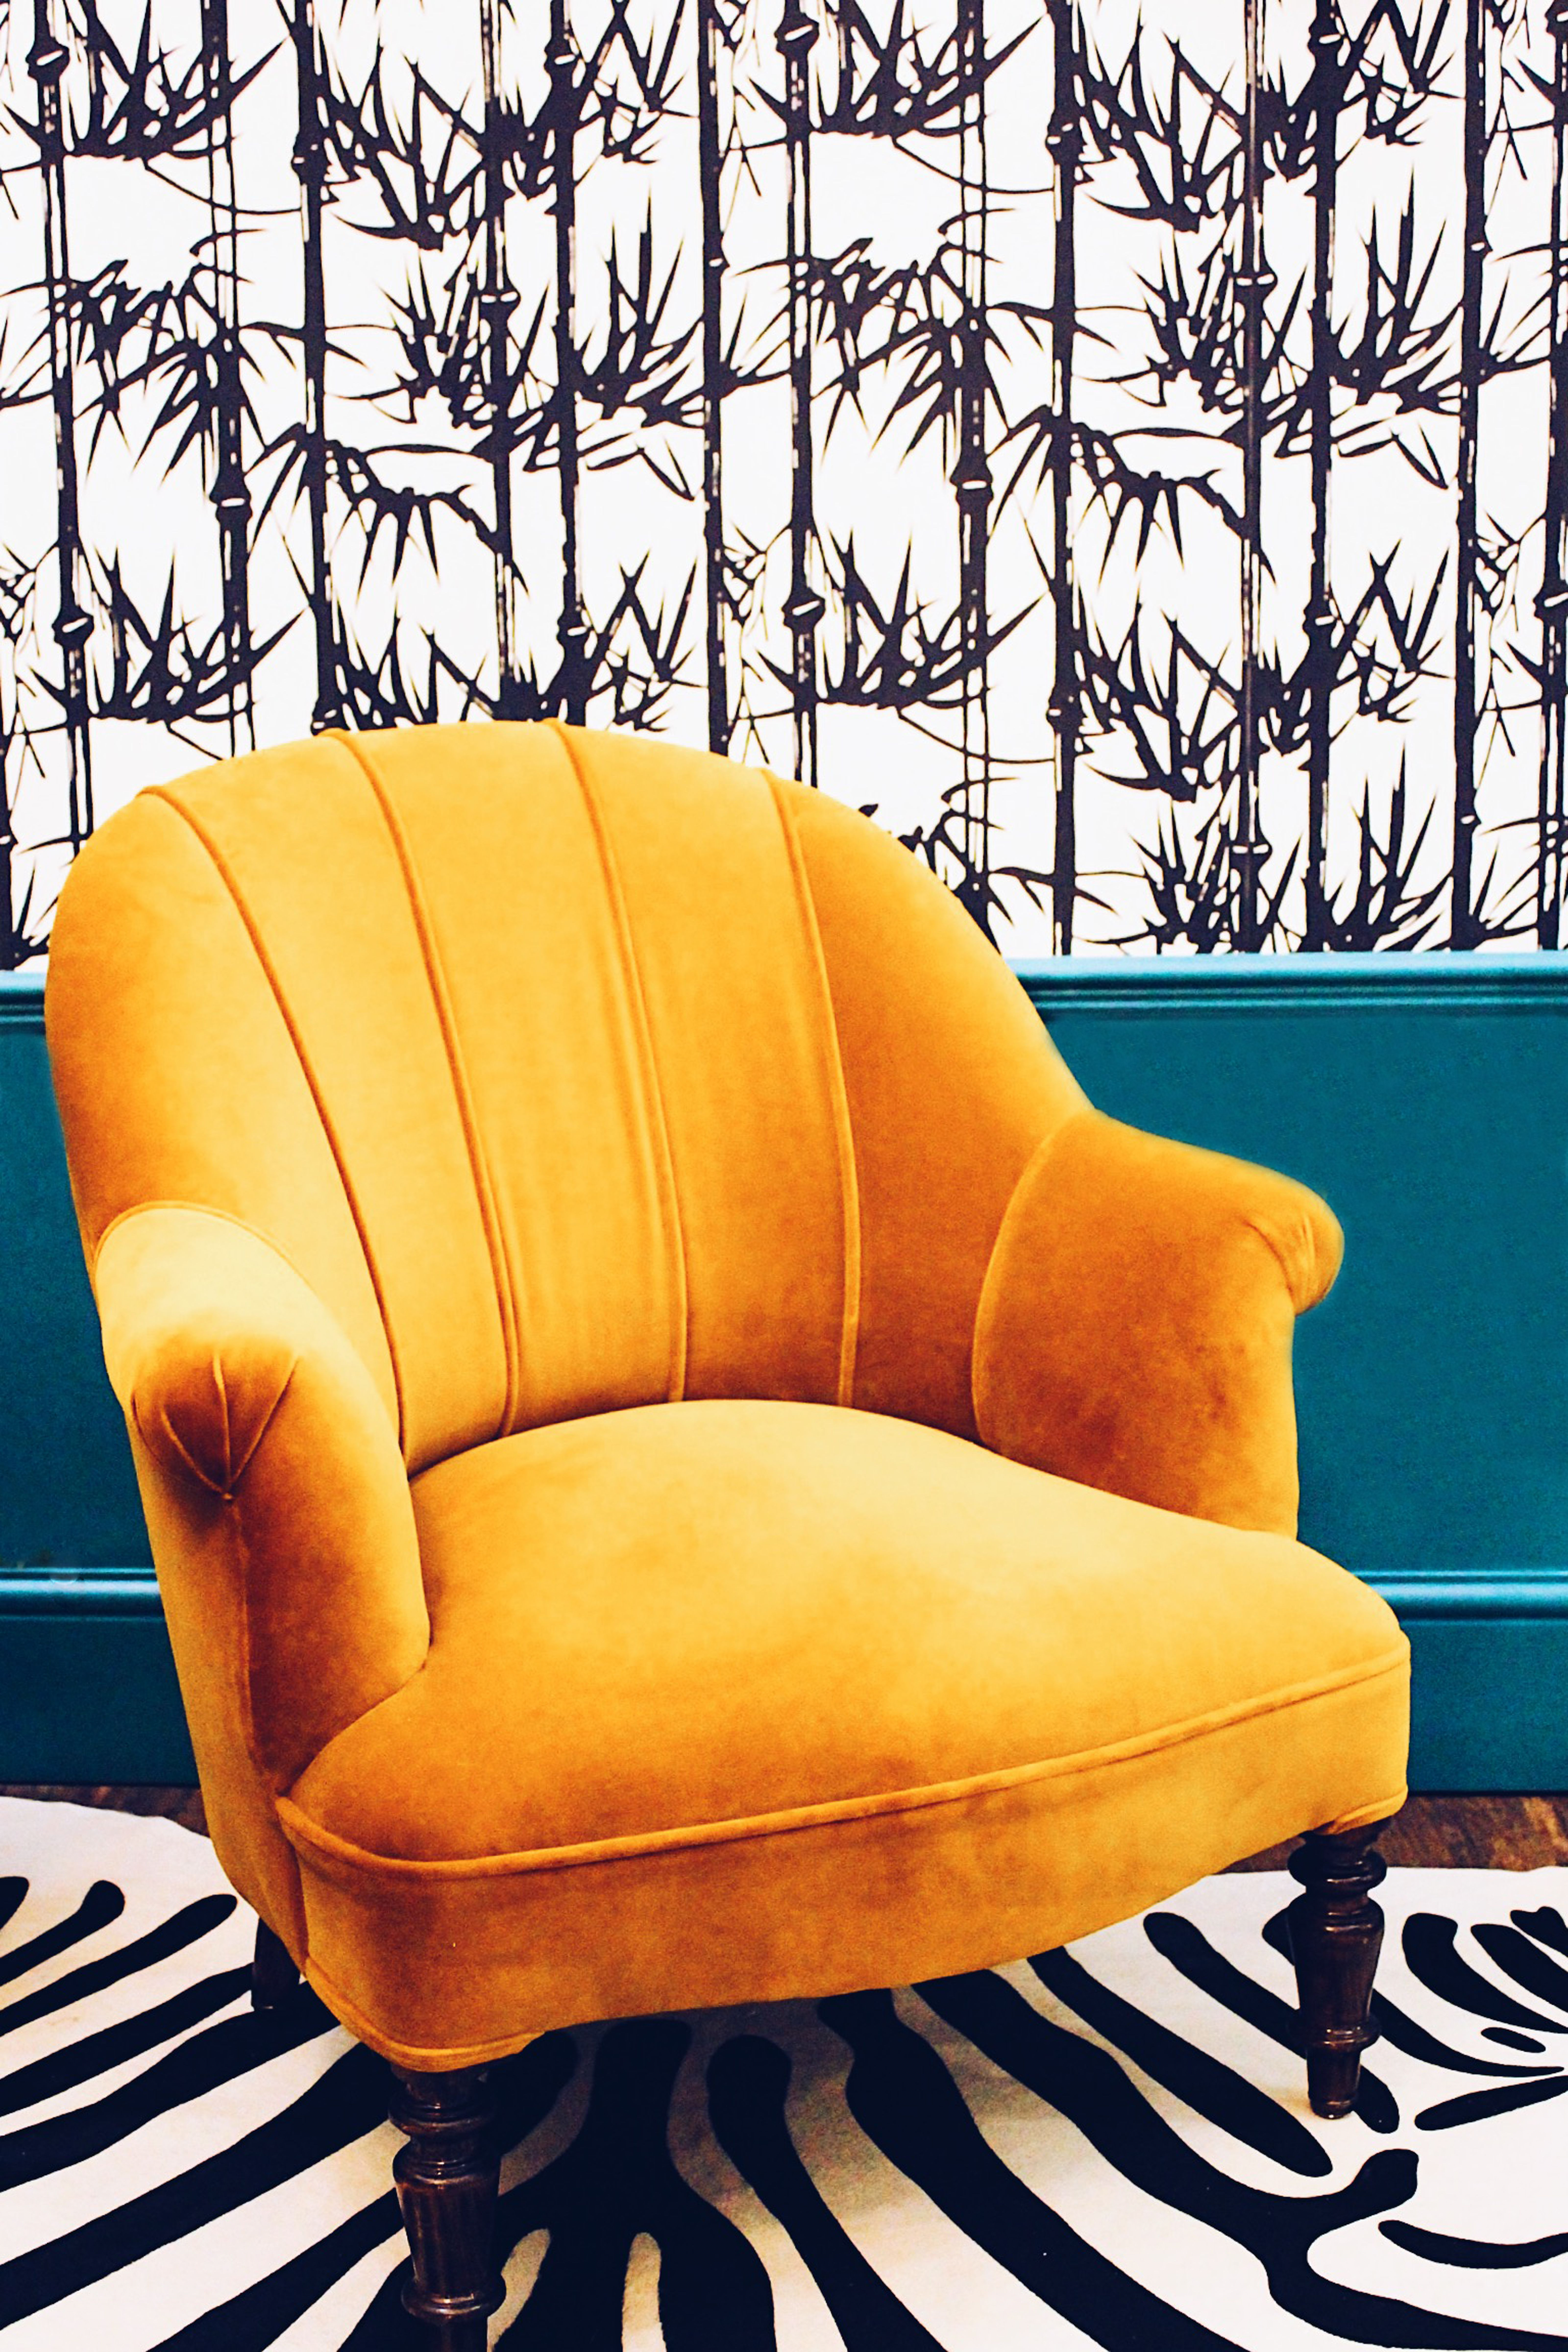 Yellow Chair And Zebra Rug With Bamboo Wallpaper Vardo Paint By Farrow Ball Design The Other Door